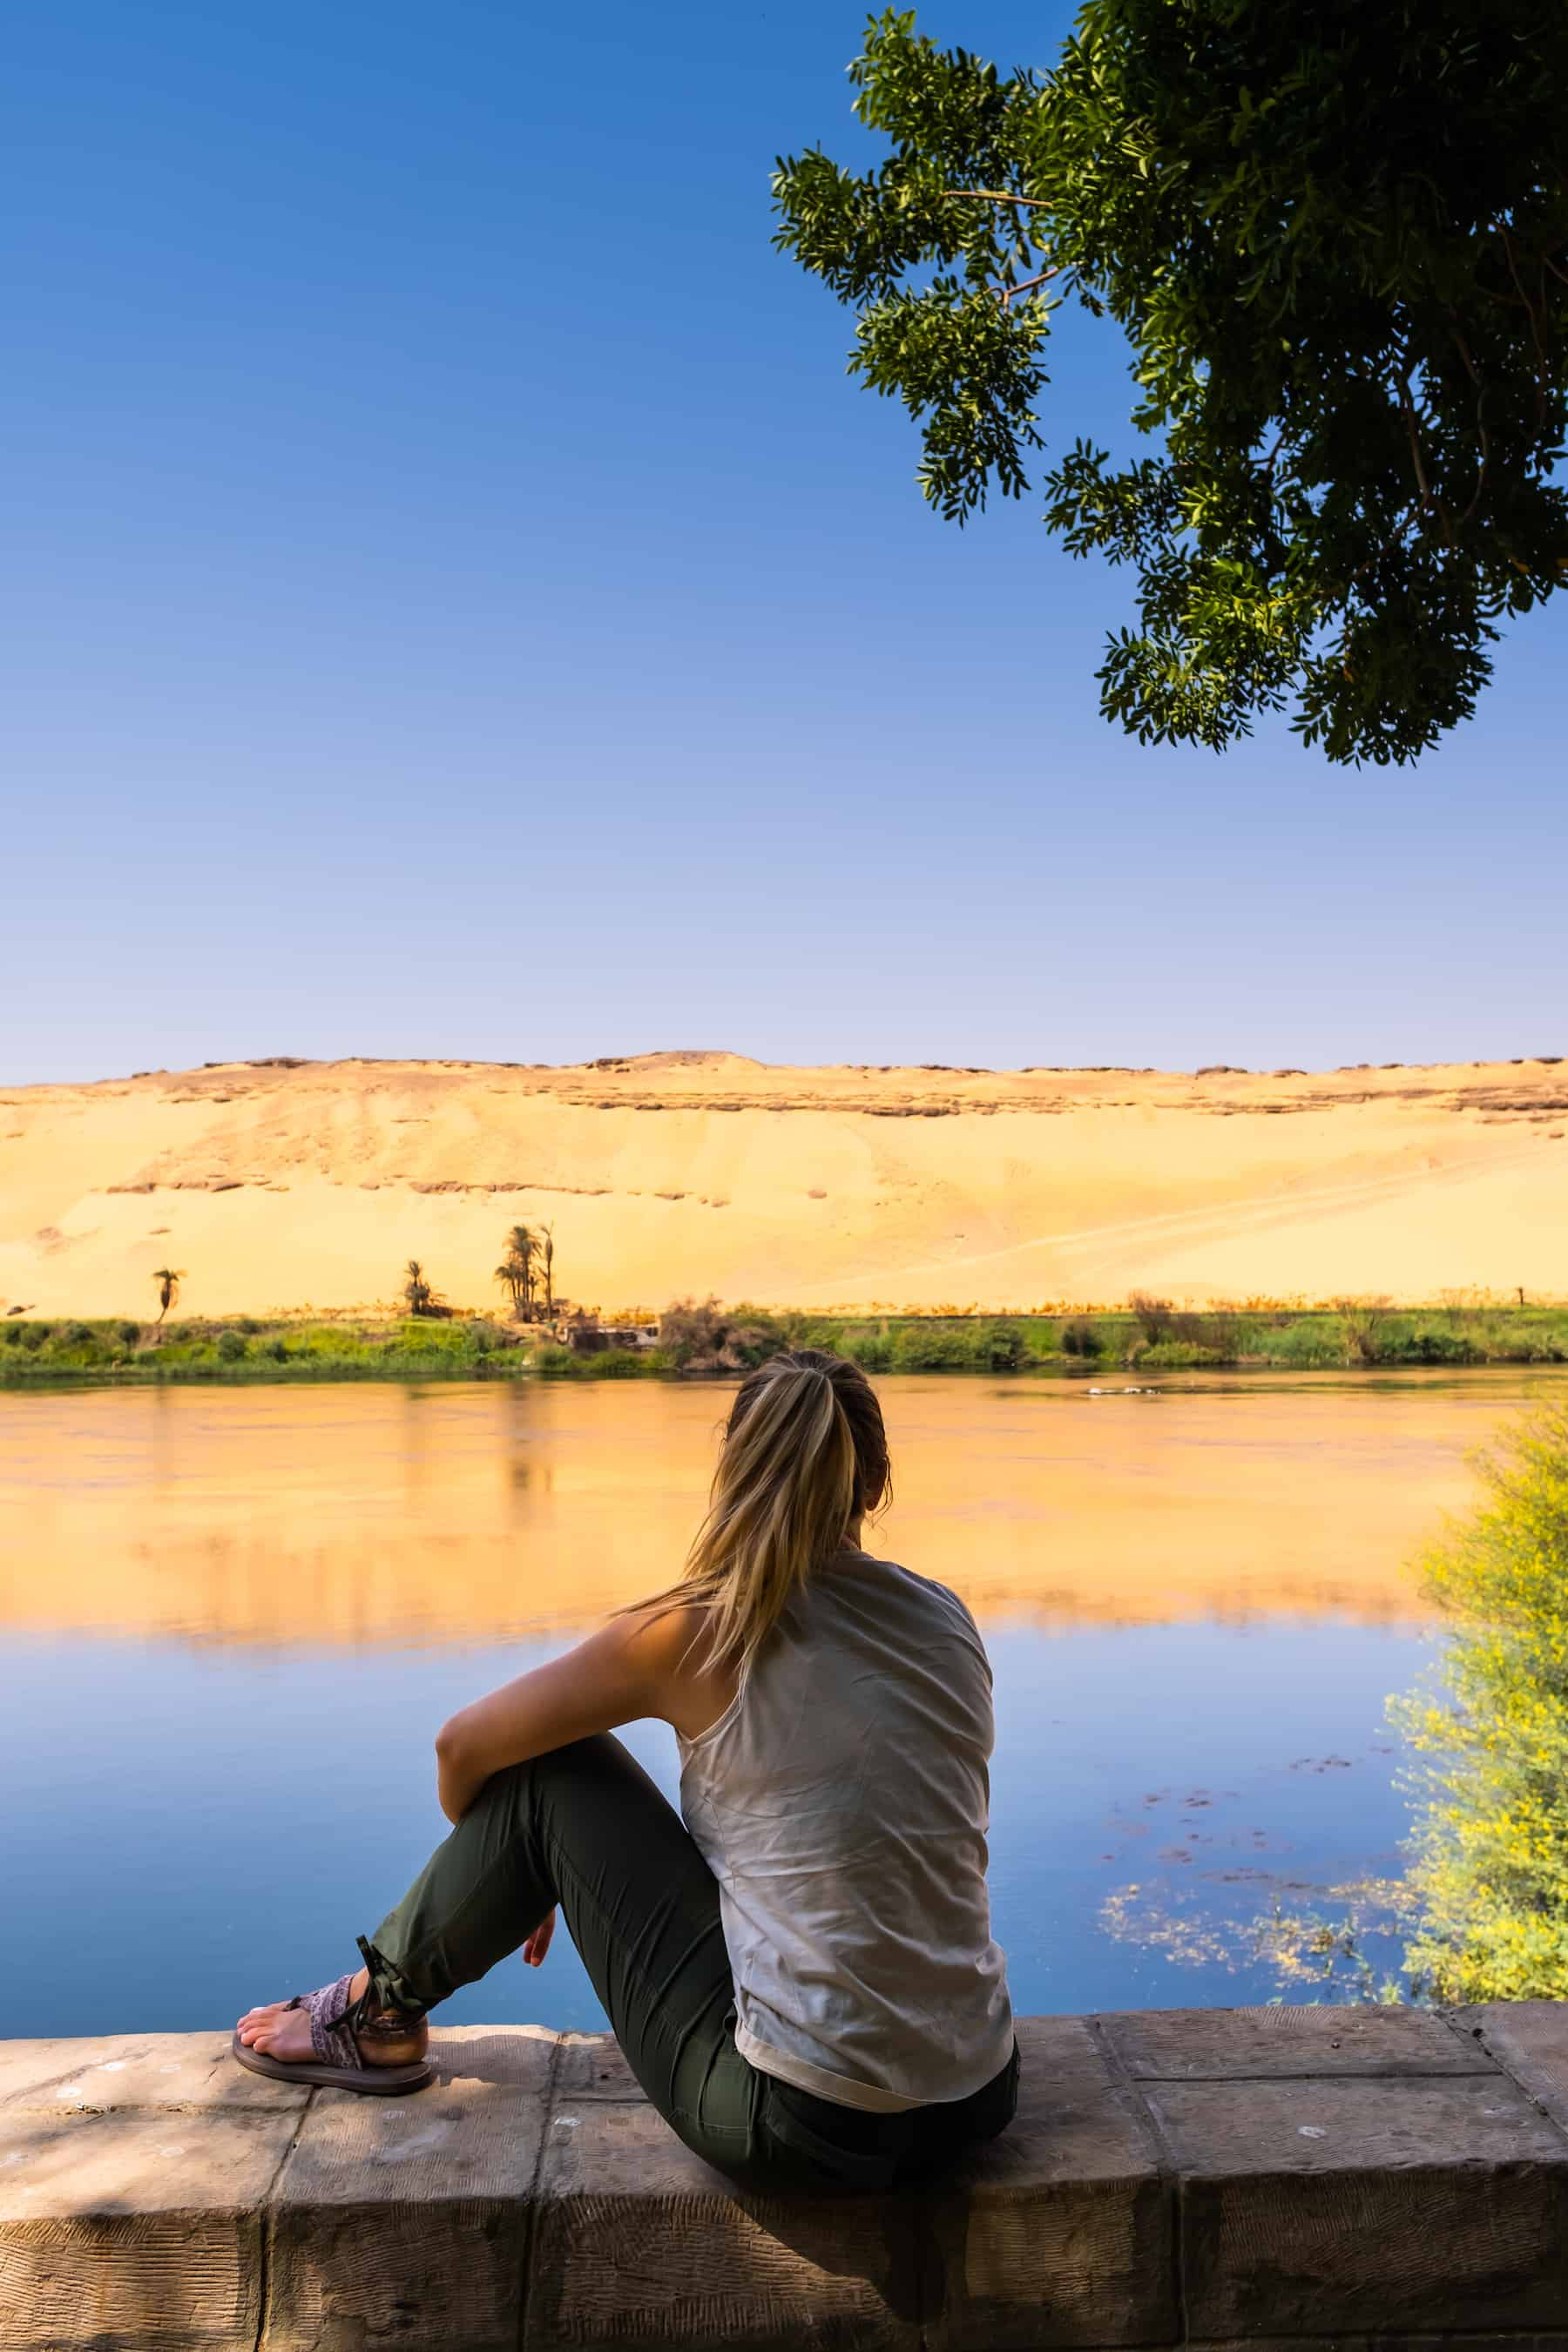 A relaxed pair of pants are perfect to wear along the Nile River